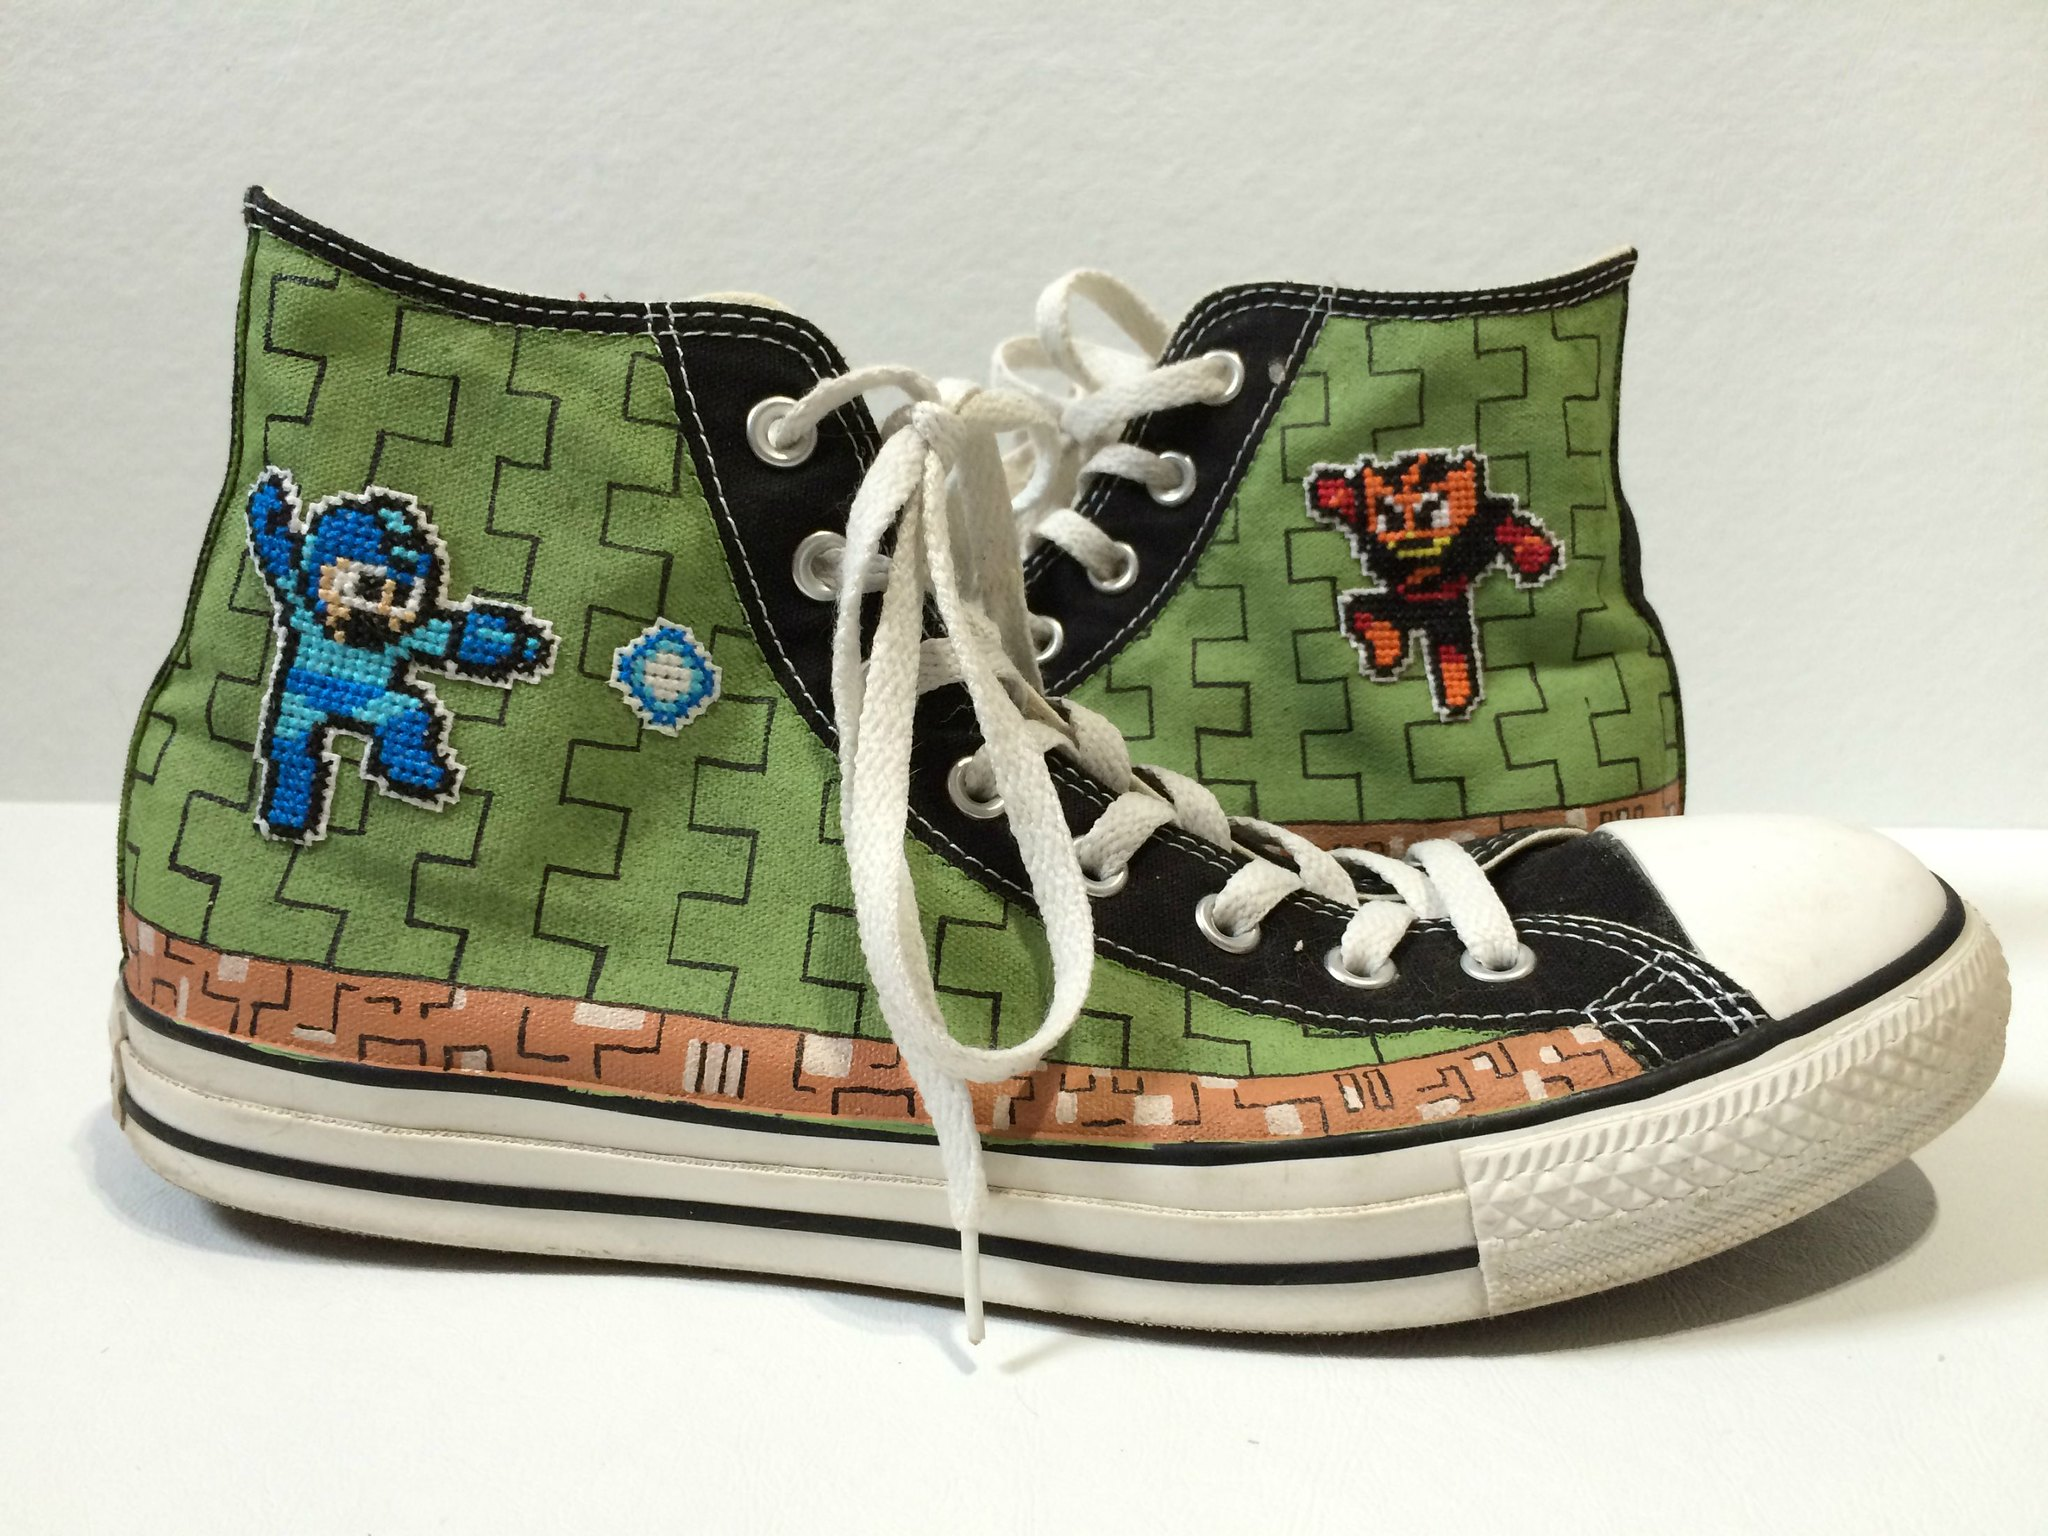 Mega Man sneakers by SheriffKarli